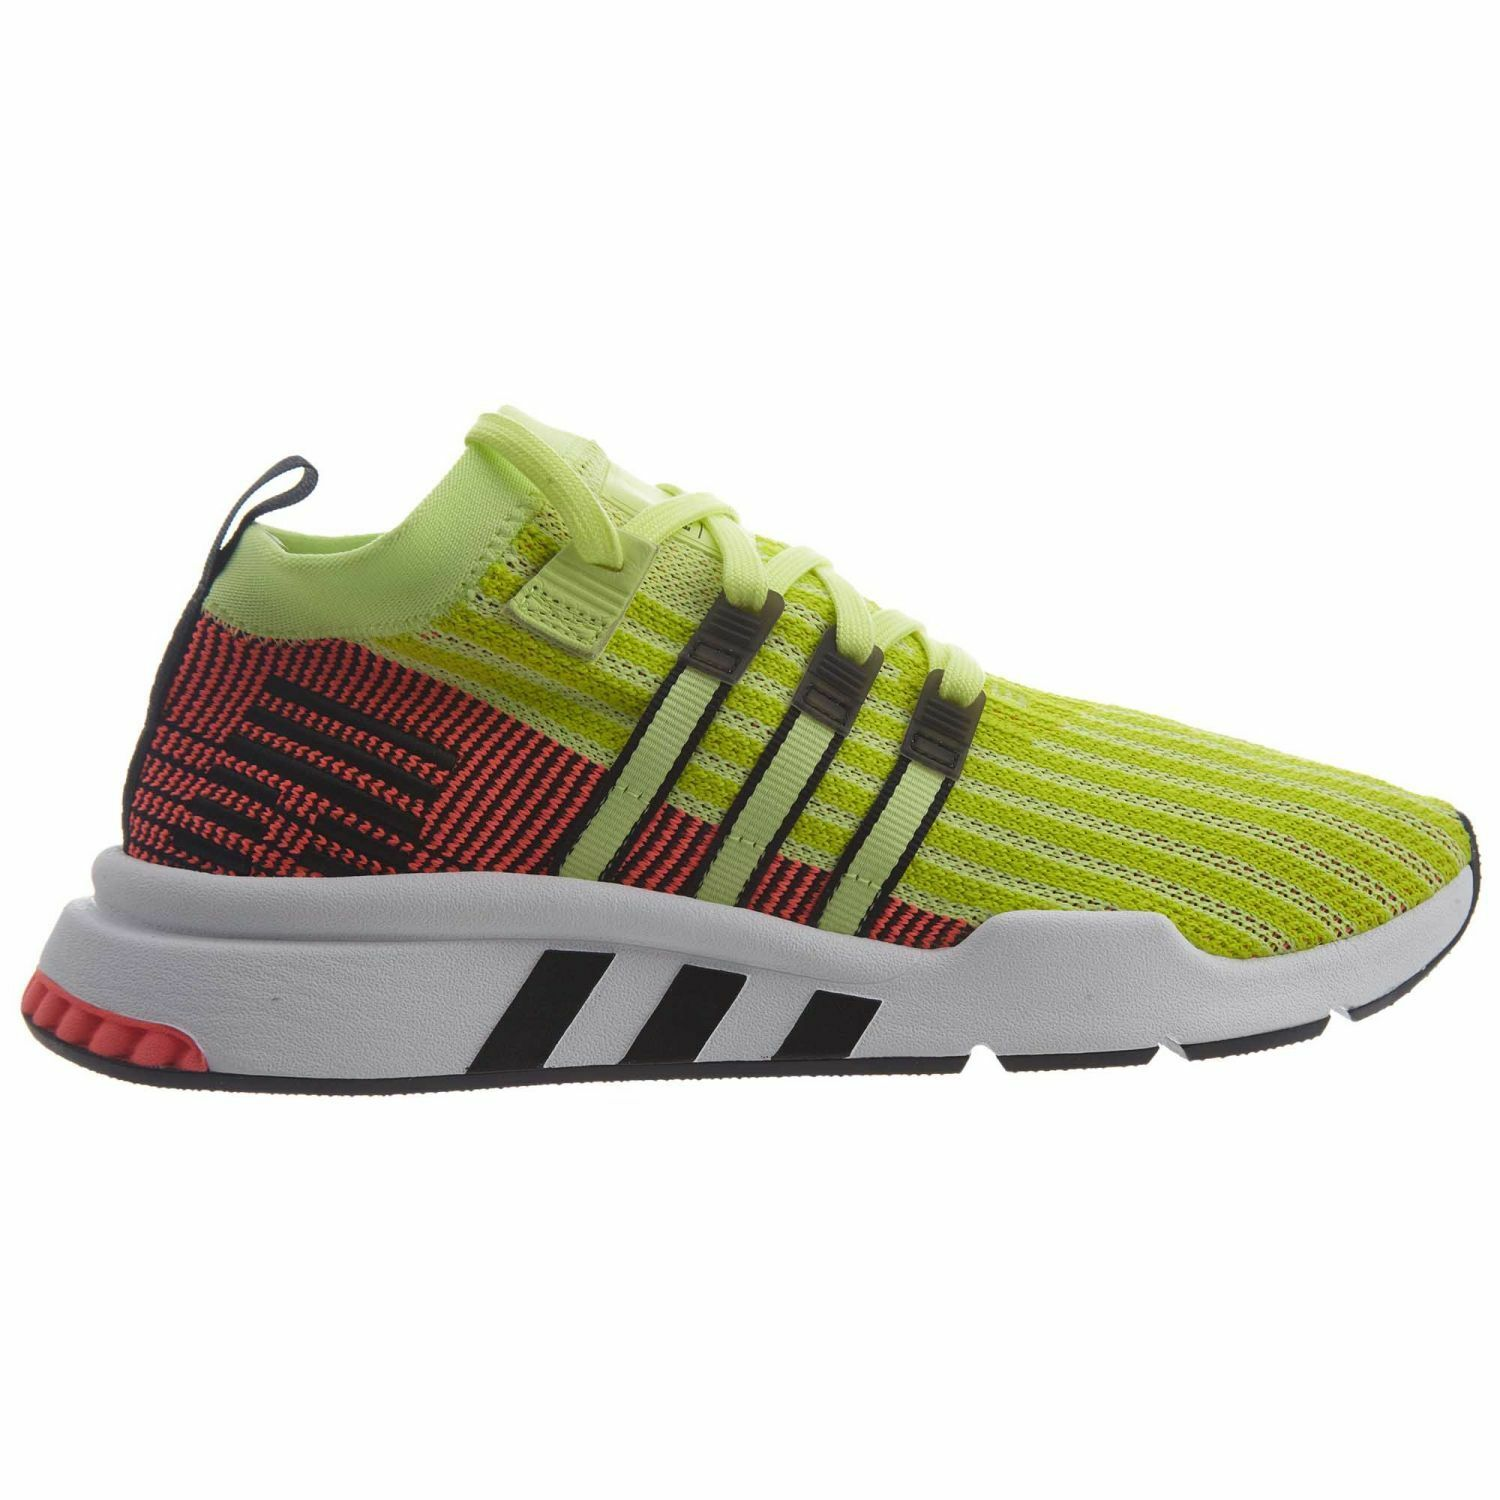 26018a393 Adidas Eqt Support Mid Adv PK Mens B37436 Glow Turbo Primeknit shoes Size 10